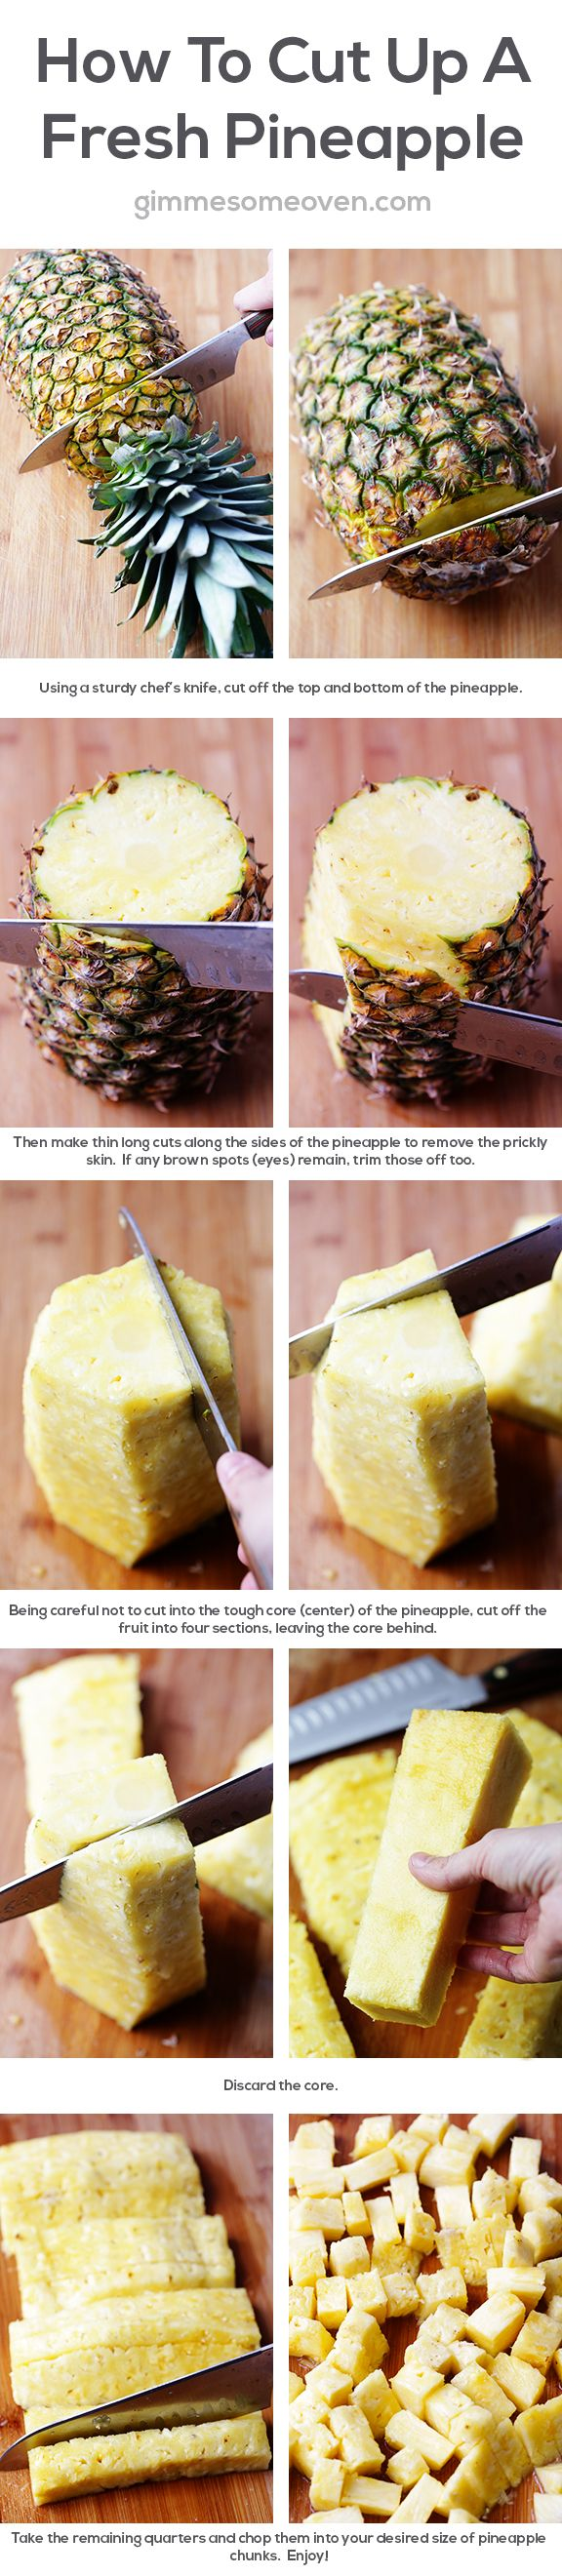 The Right Way To Cut A Pineapple The Right Way To Cut A Pineapple new pics